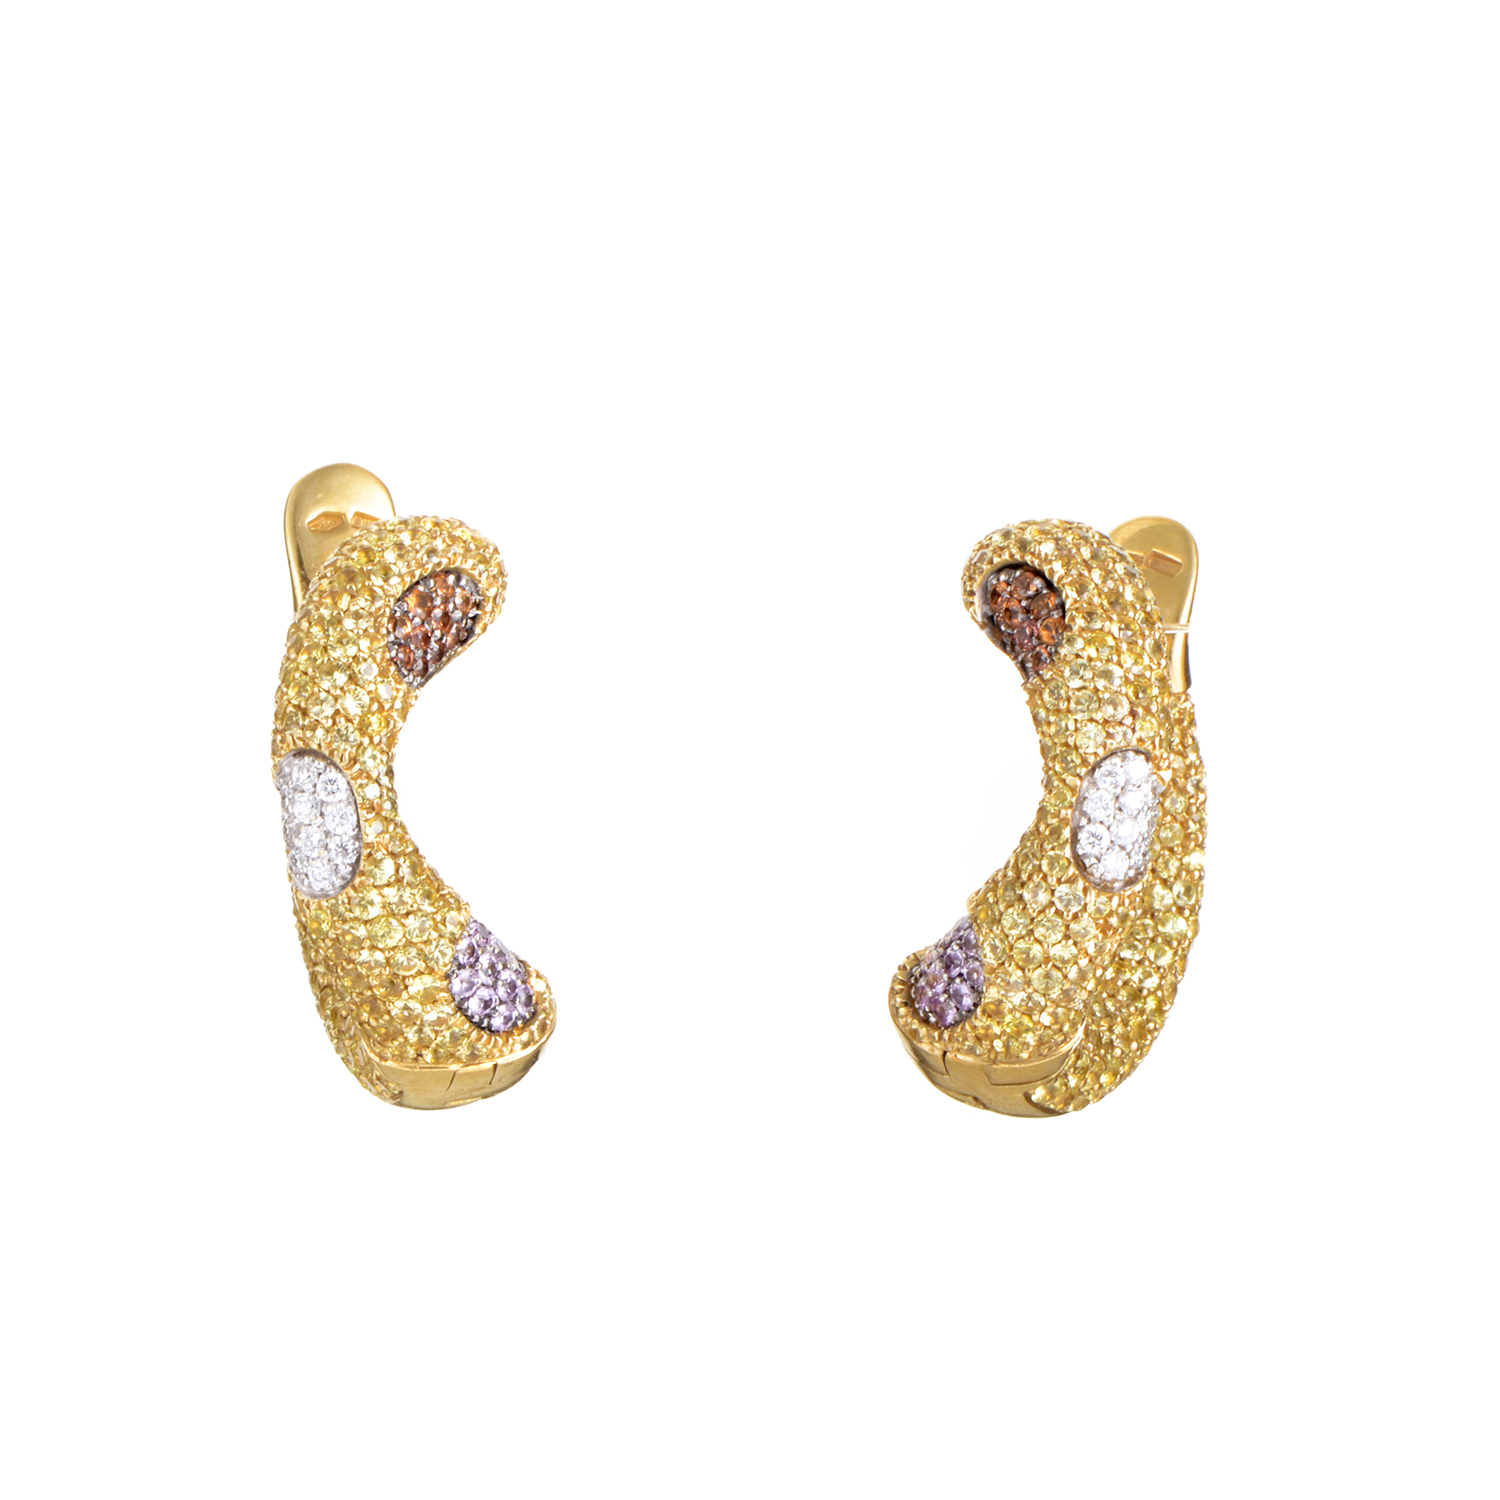 Women's 18K Yellow Gold Multi-Sapphire & Diamond Earrings 200-00024